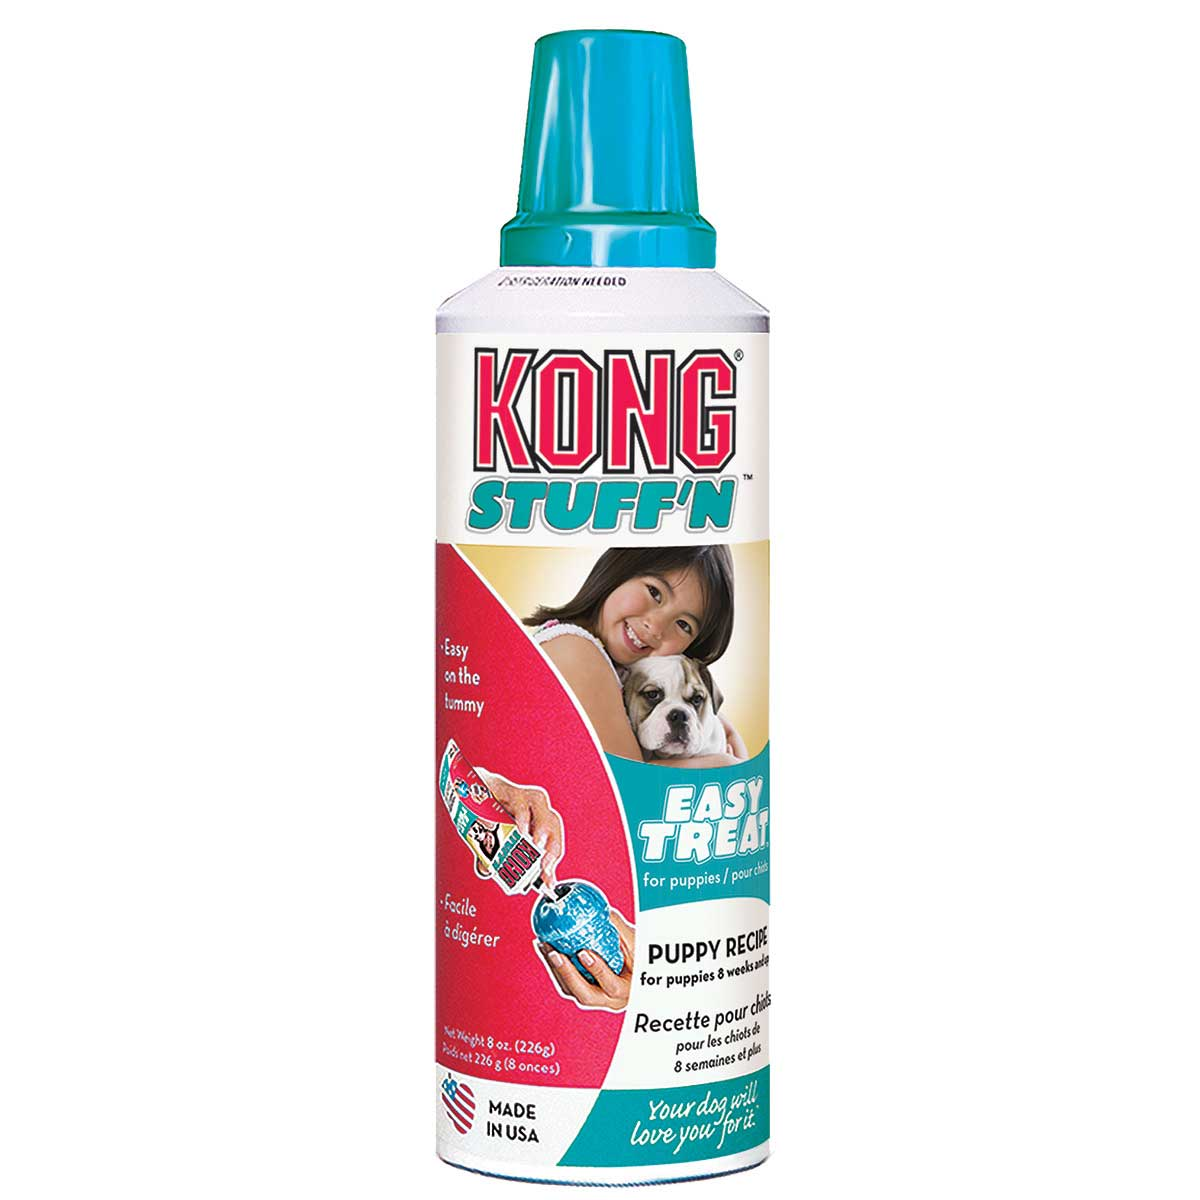 KONG Puppy Easy Treat 8 oz